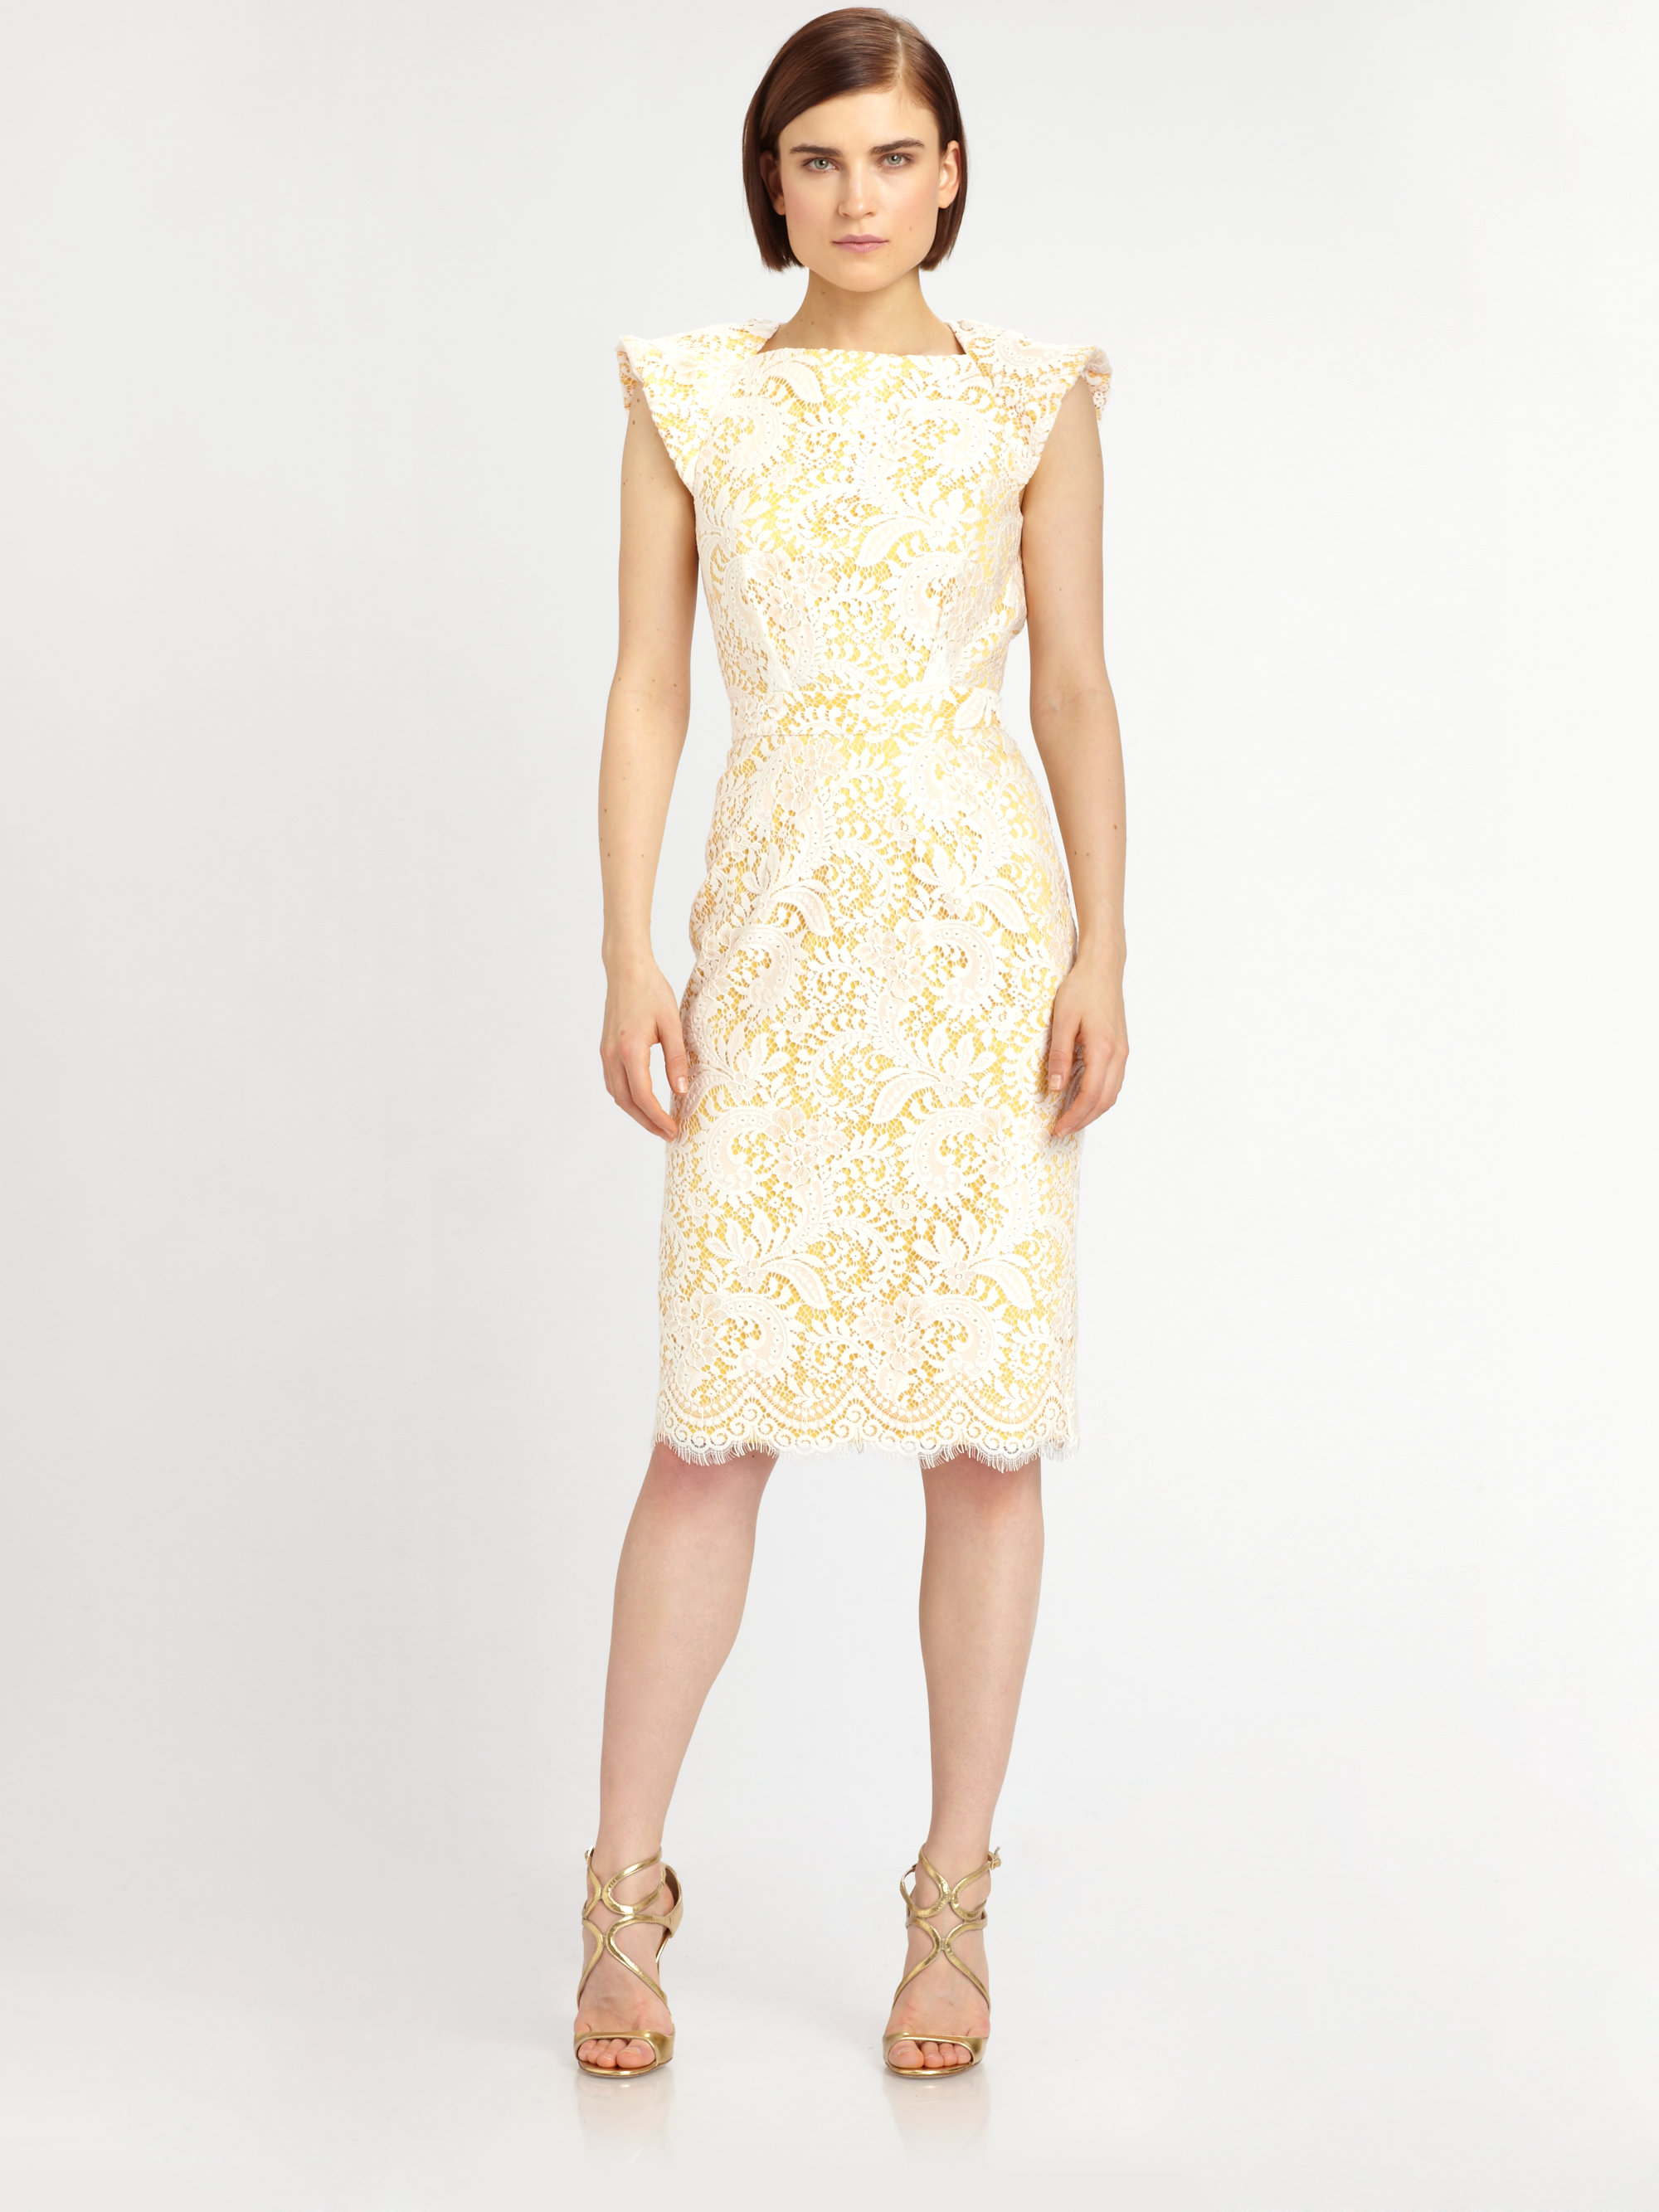 Badgley Mischka Bowback Lace Dress Lyst